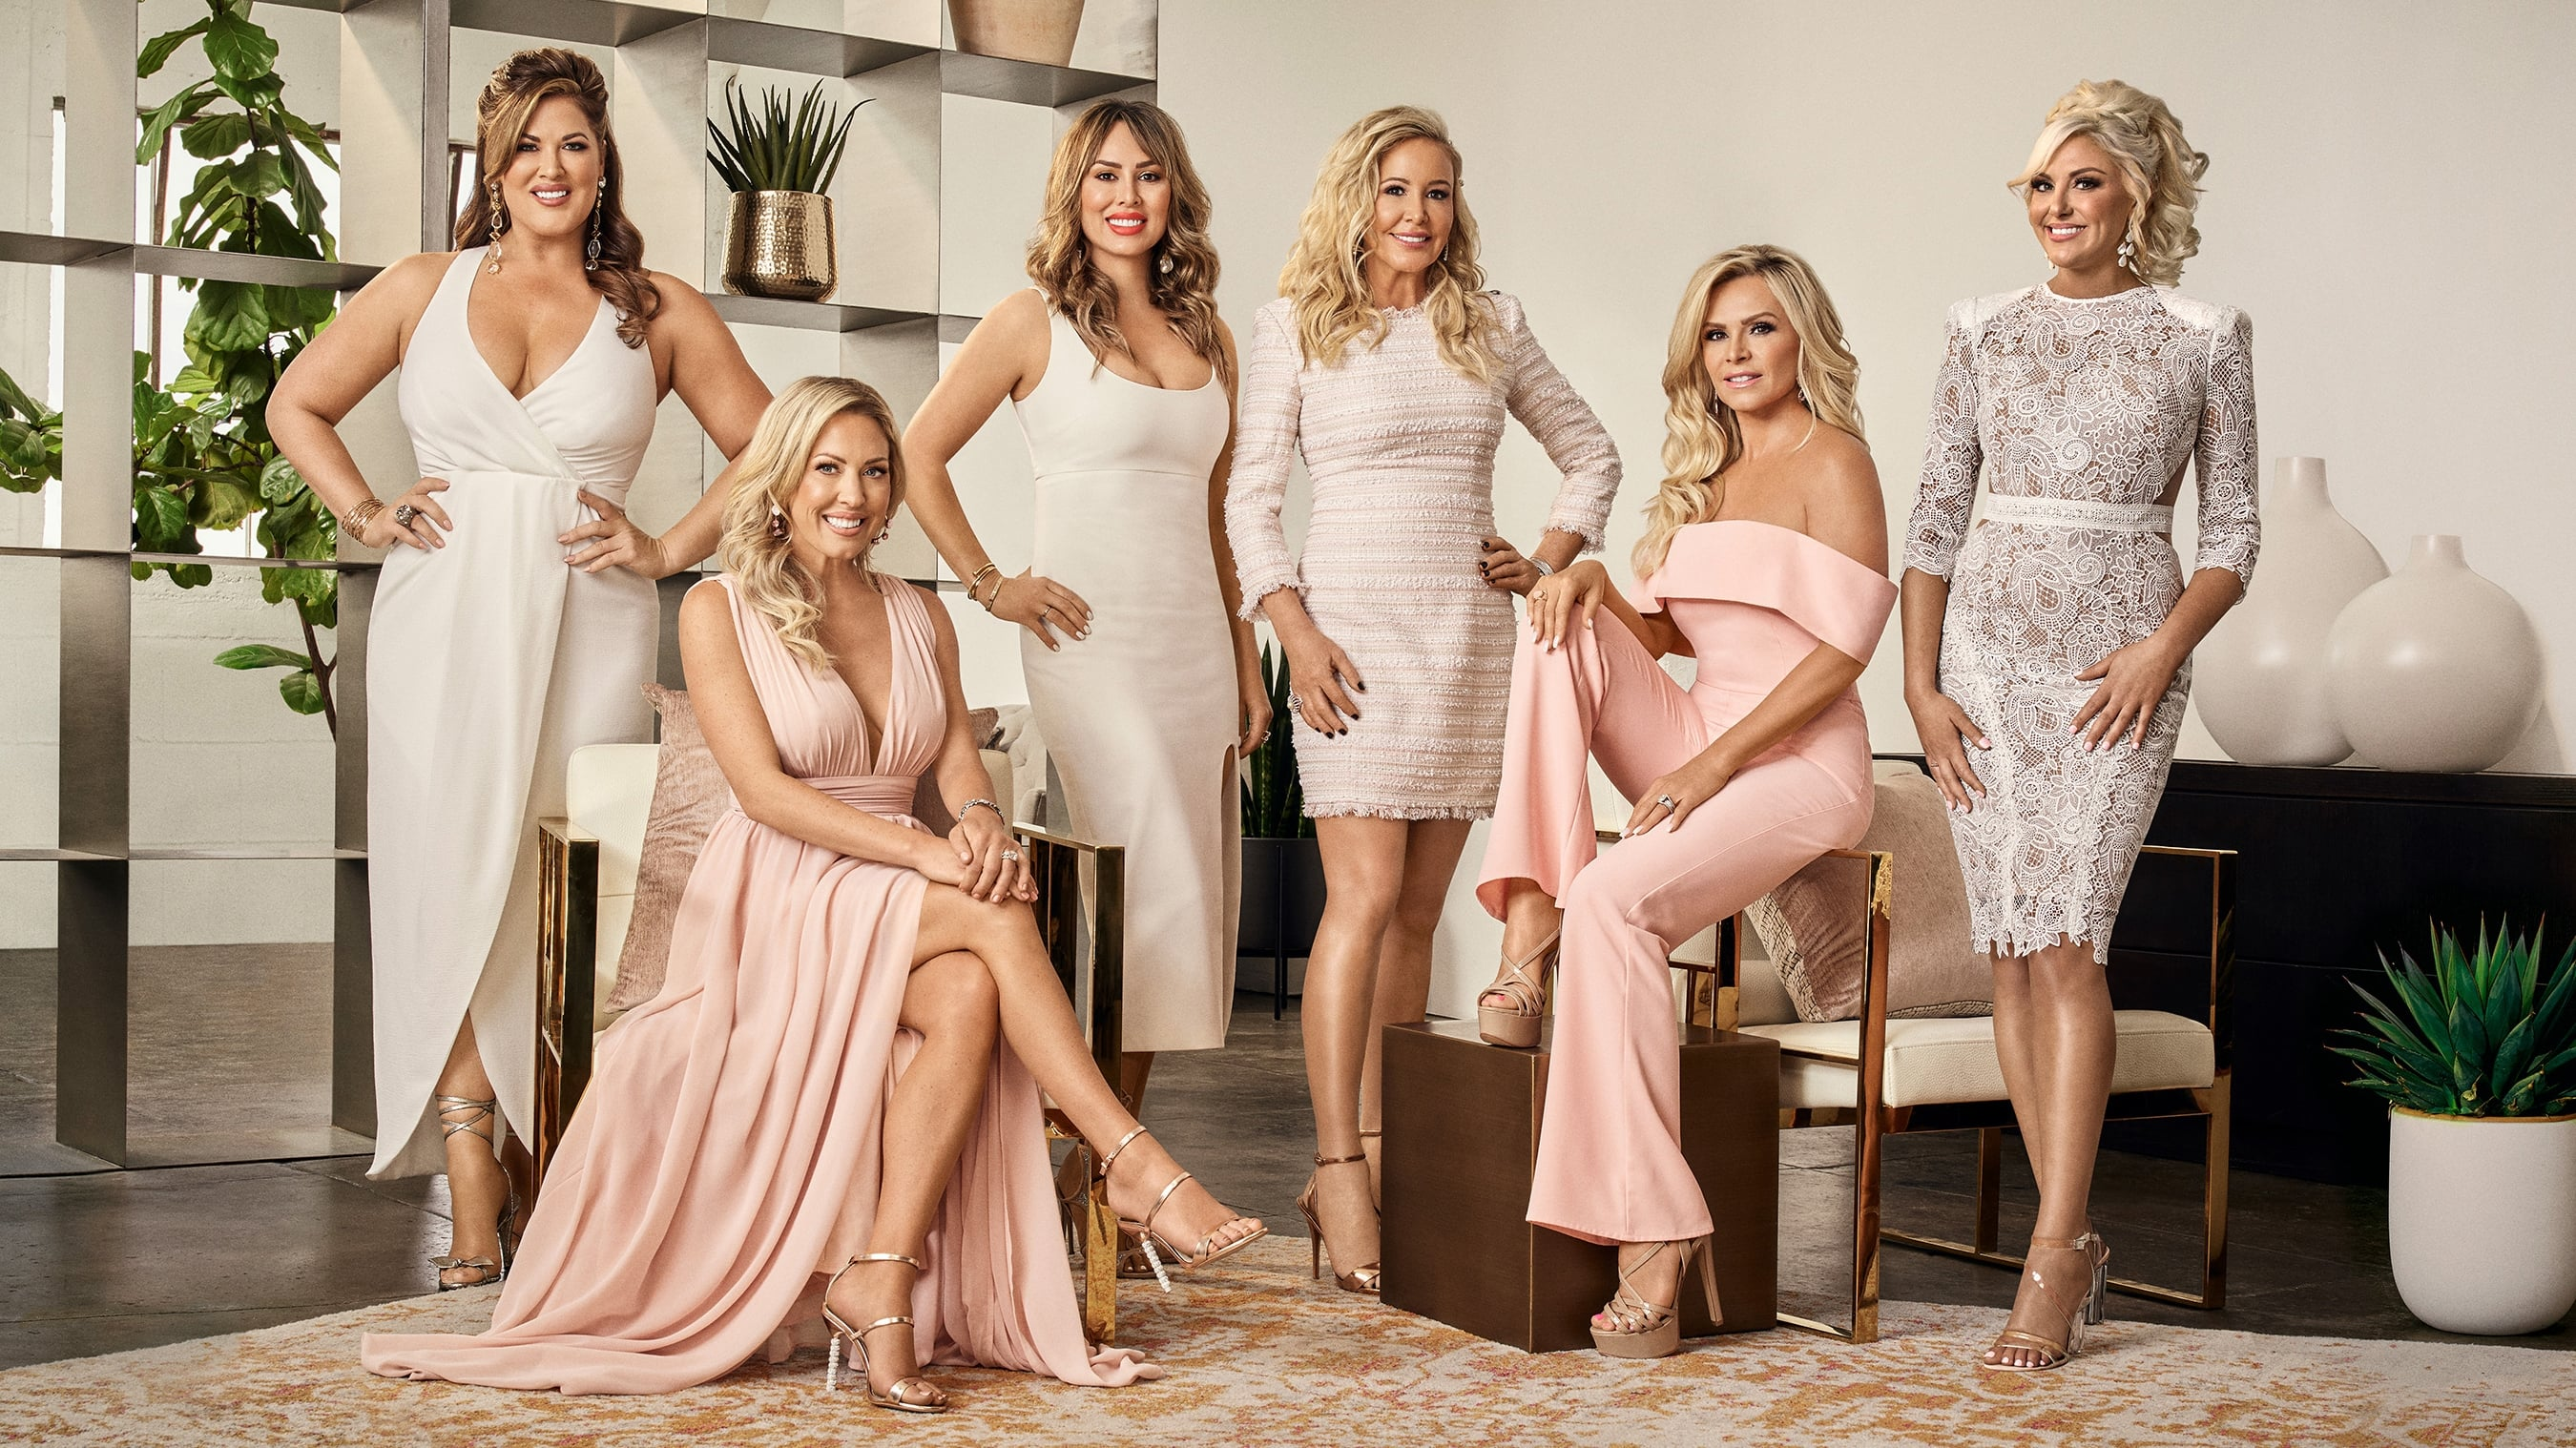 The Real Housewives of Orange County - Season 1